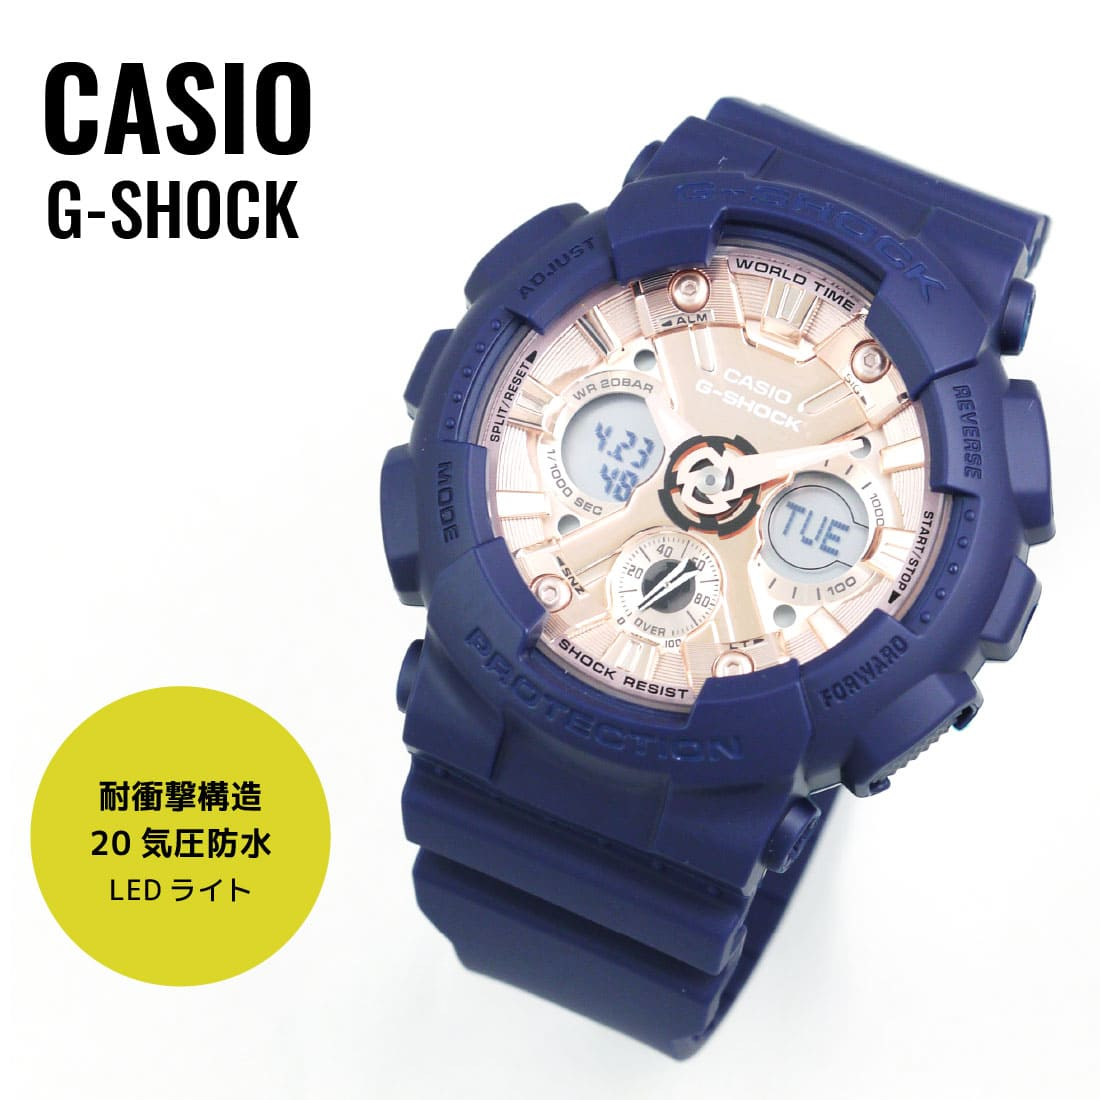 腕時計, 男女兼用腕時計 CASIO G-SHOCK G S series GMA-S120MF-2A2